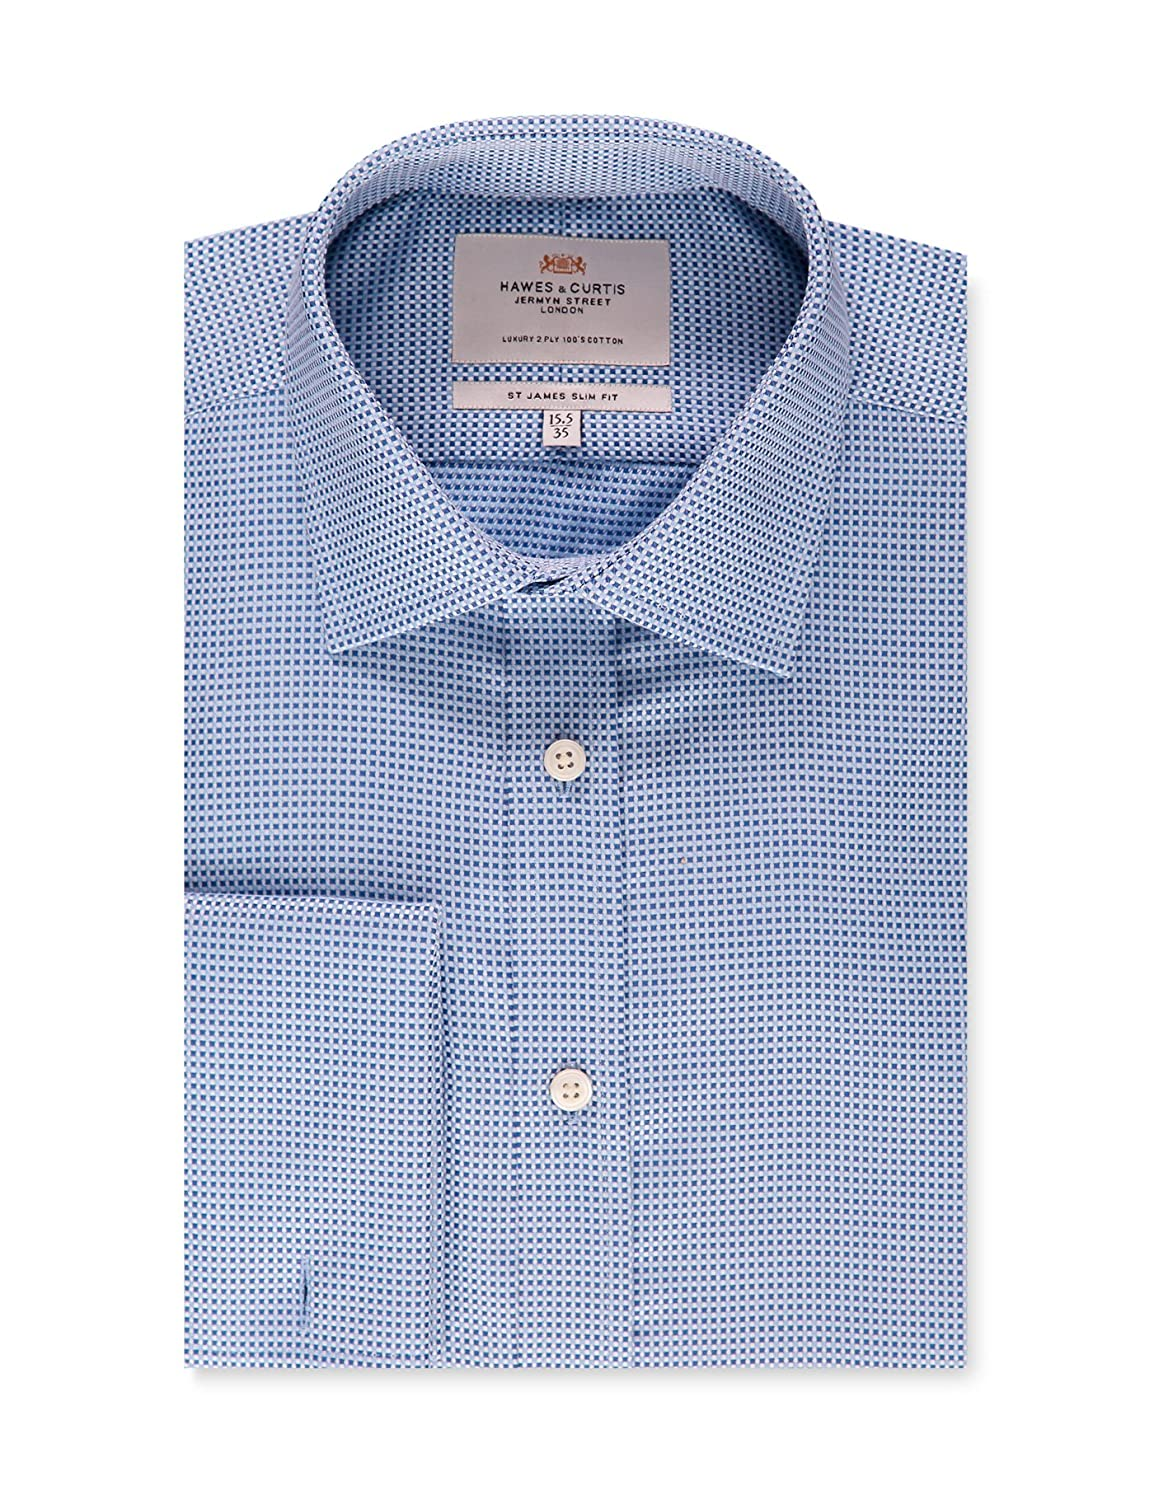 dd00c454 Top1: HAWES & CURTIS Mens Blue Dobby Weave Slim Fit Dress Shirt - French  Cuff